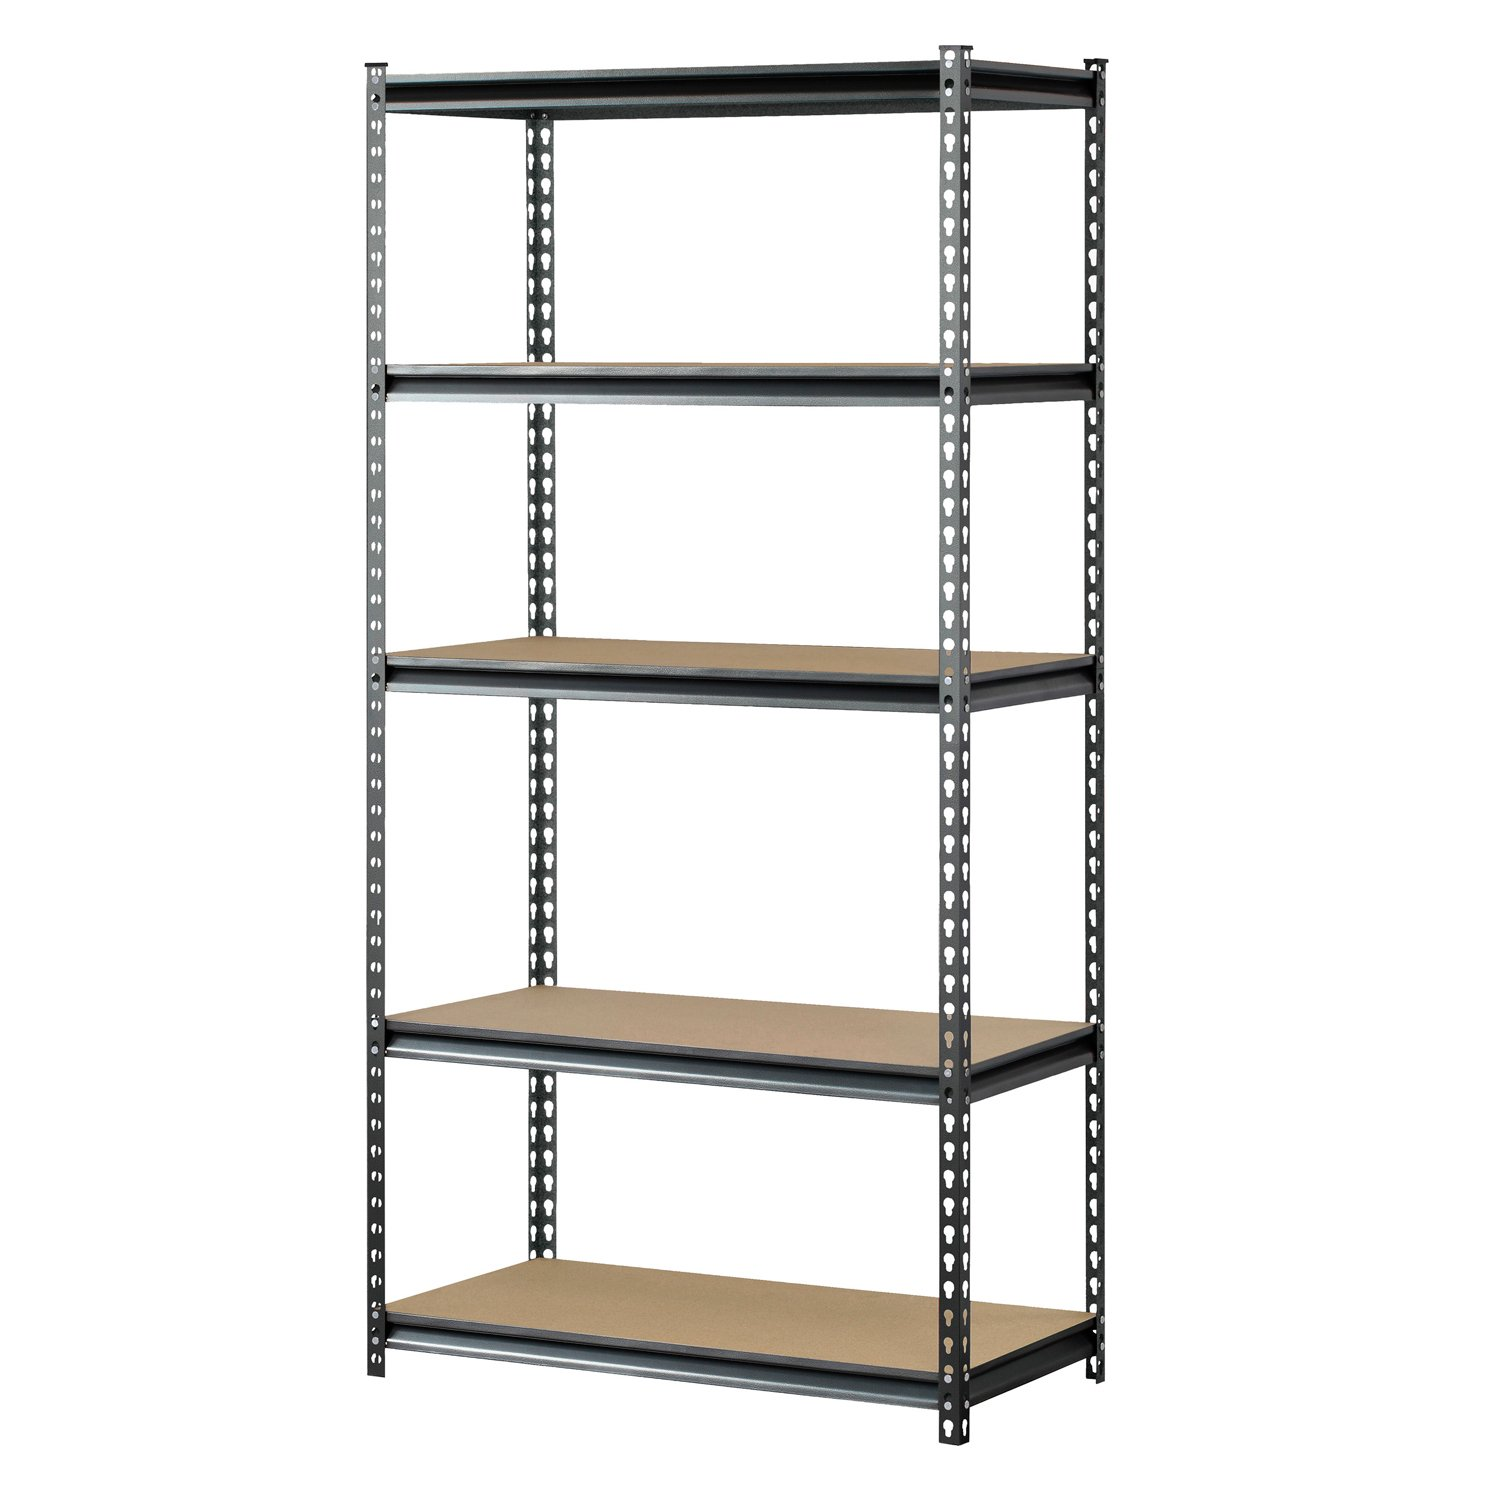 shelf product steel storage muscle cfm shelving master garage rack hayneedle unit